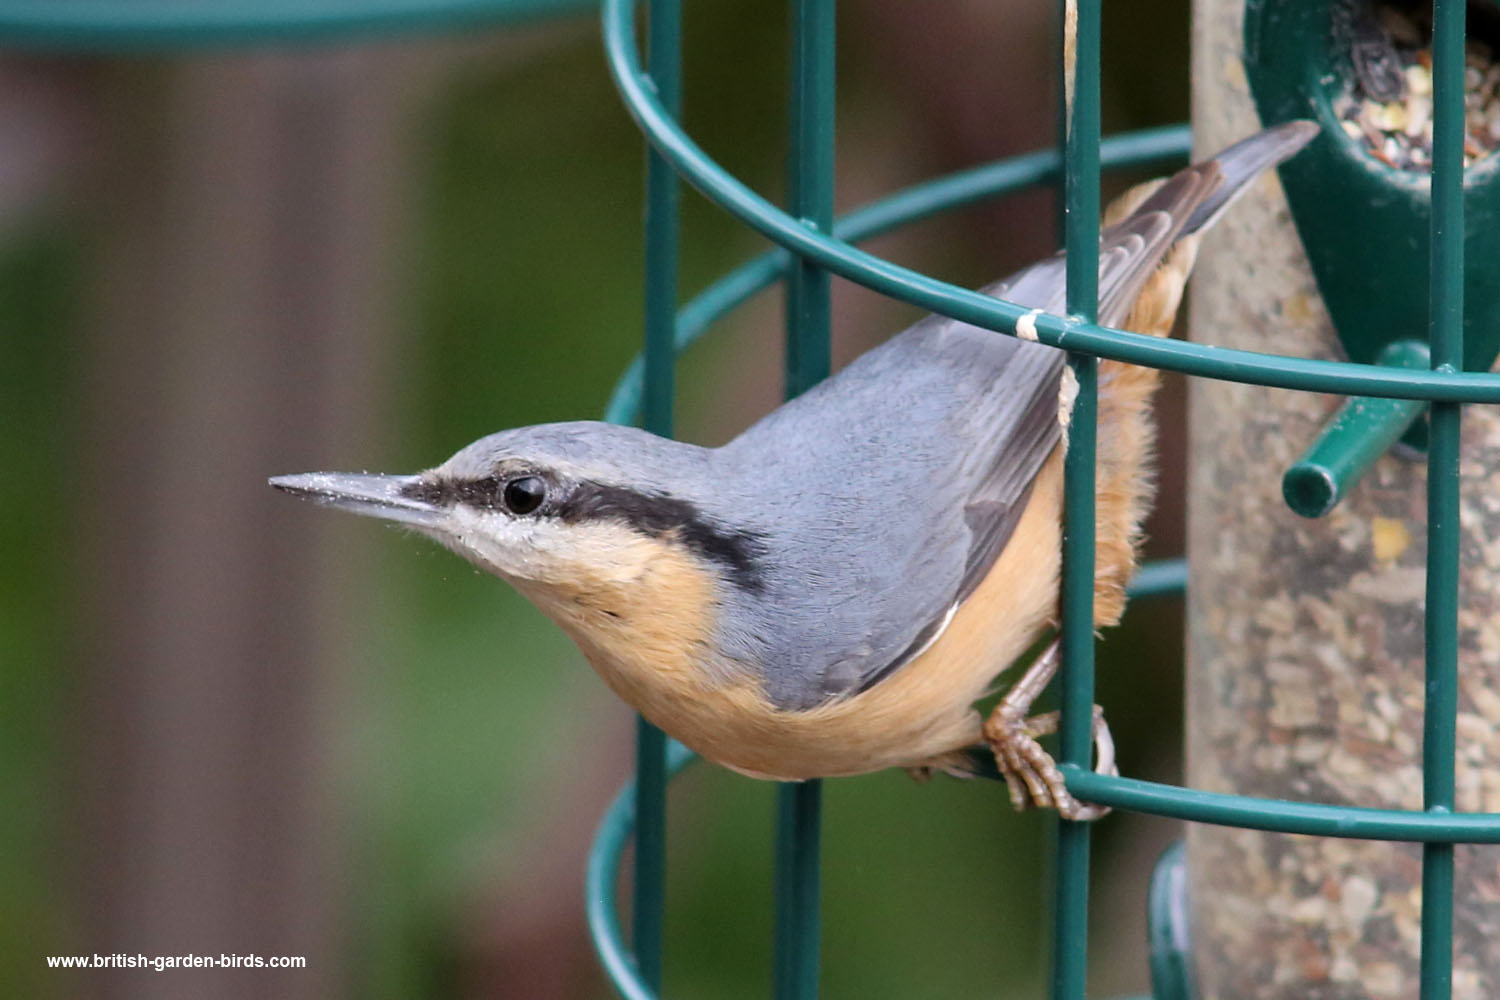 Mixed seed feeder